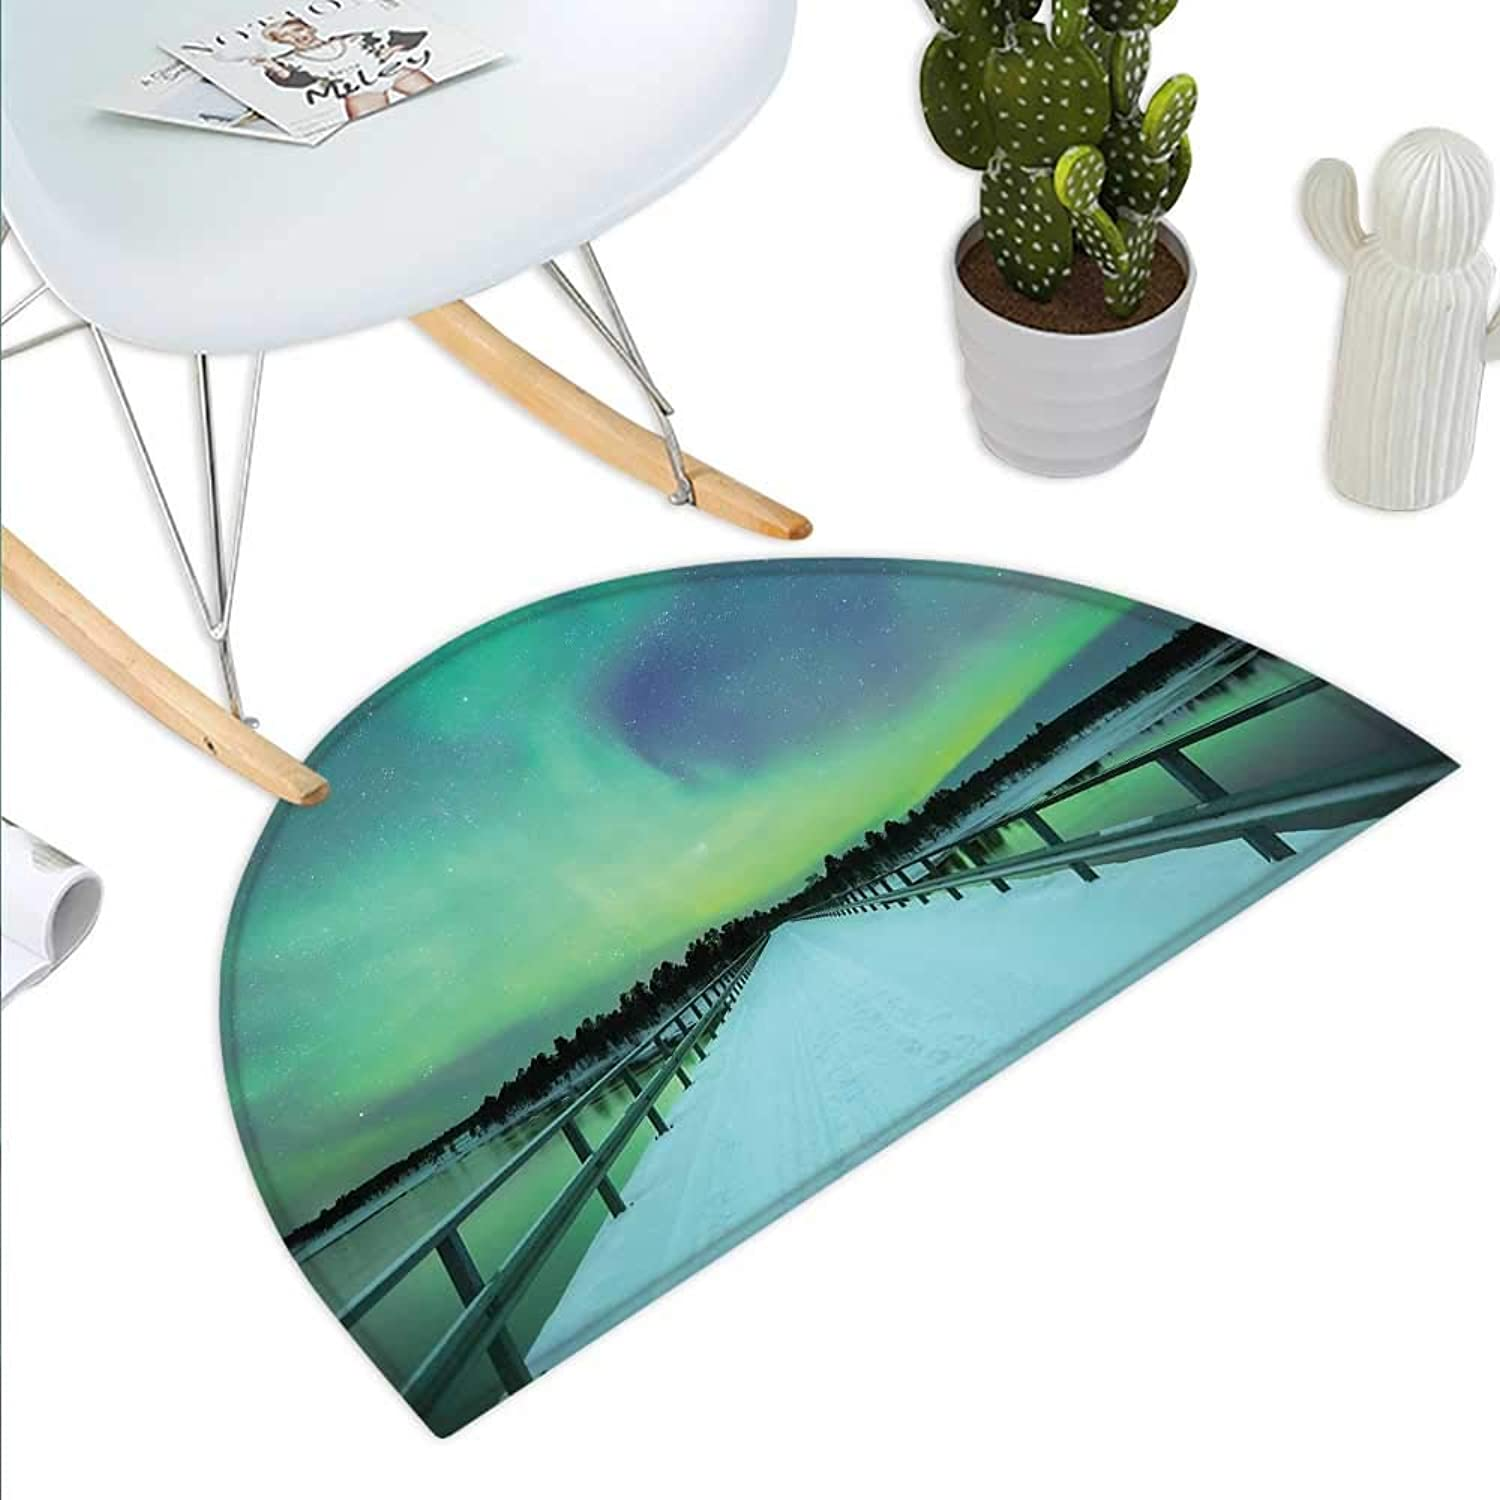 Aurora Borealis Semicircle Doormat Long Mystic Sky Over Bridge in Snowy Arctic Frozen River Image Halfmoon doormats H 39.3  xD 59  Lime Green Petrol bluee